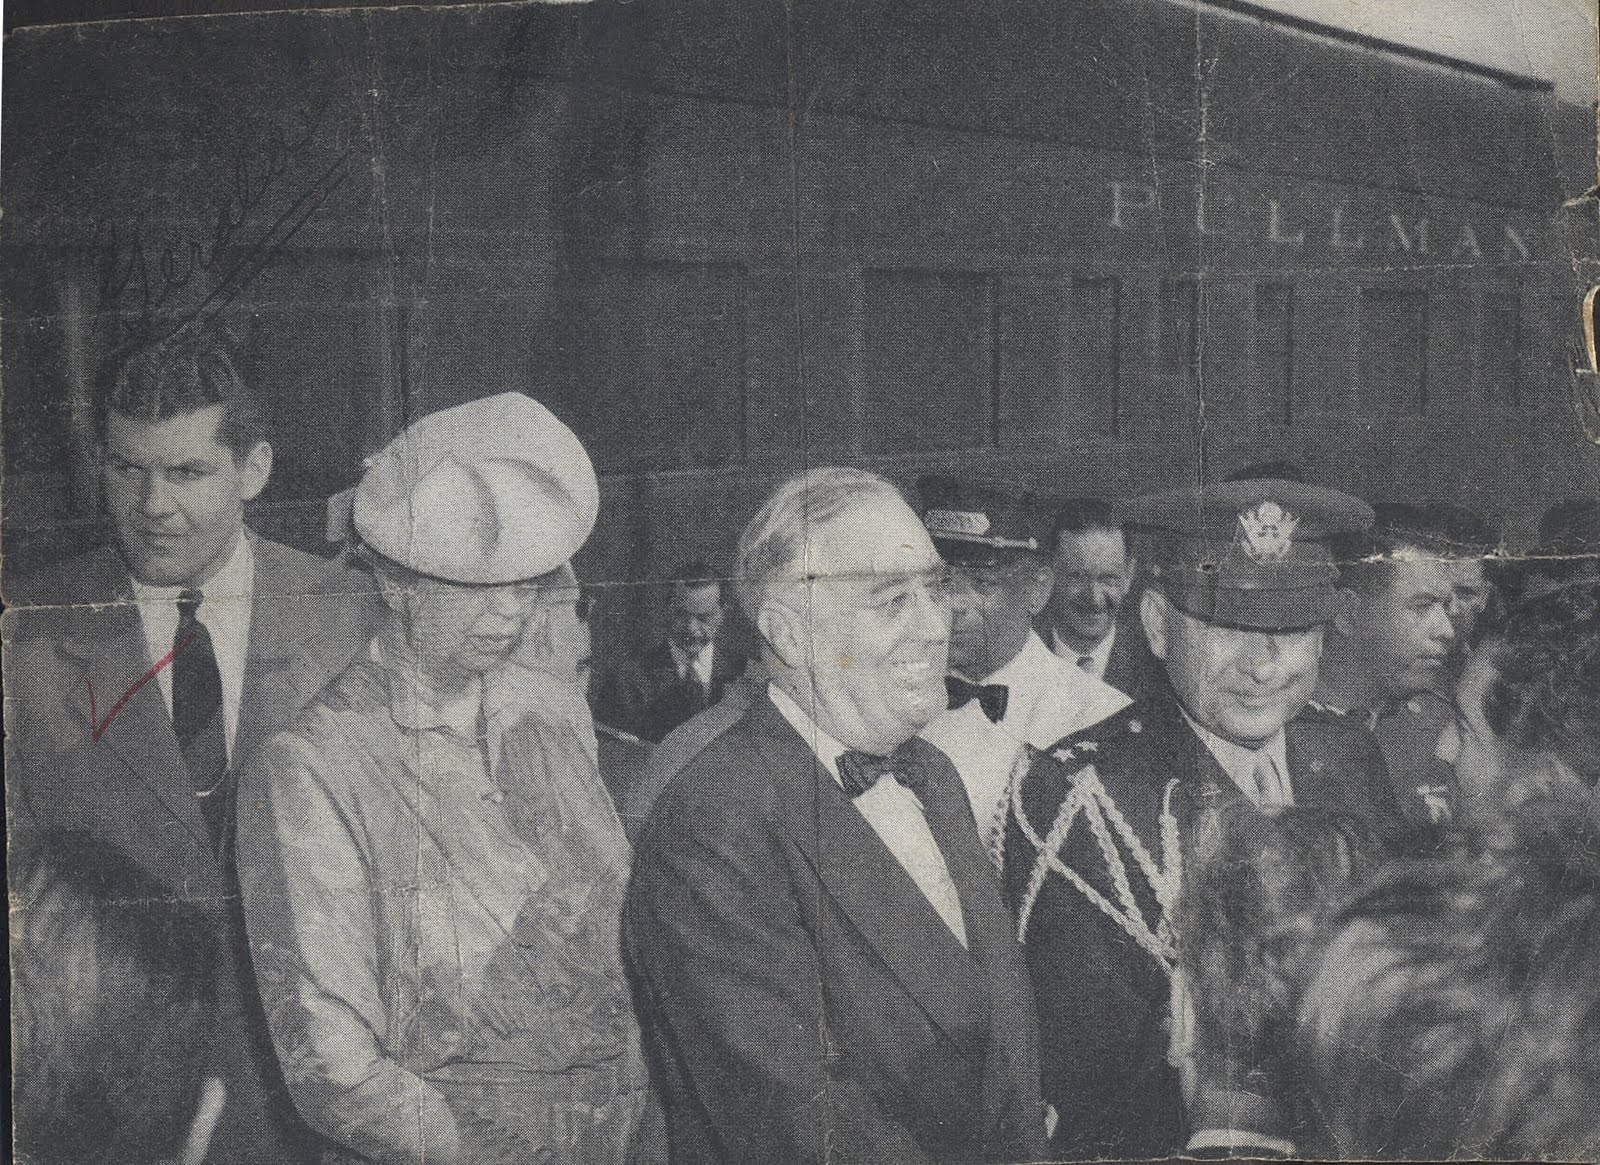 GERALD BEHN WITH THE ROOSEVELTS